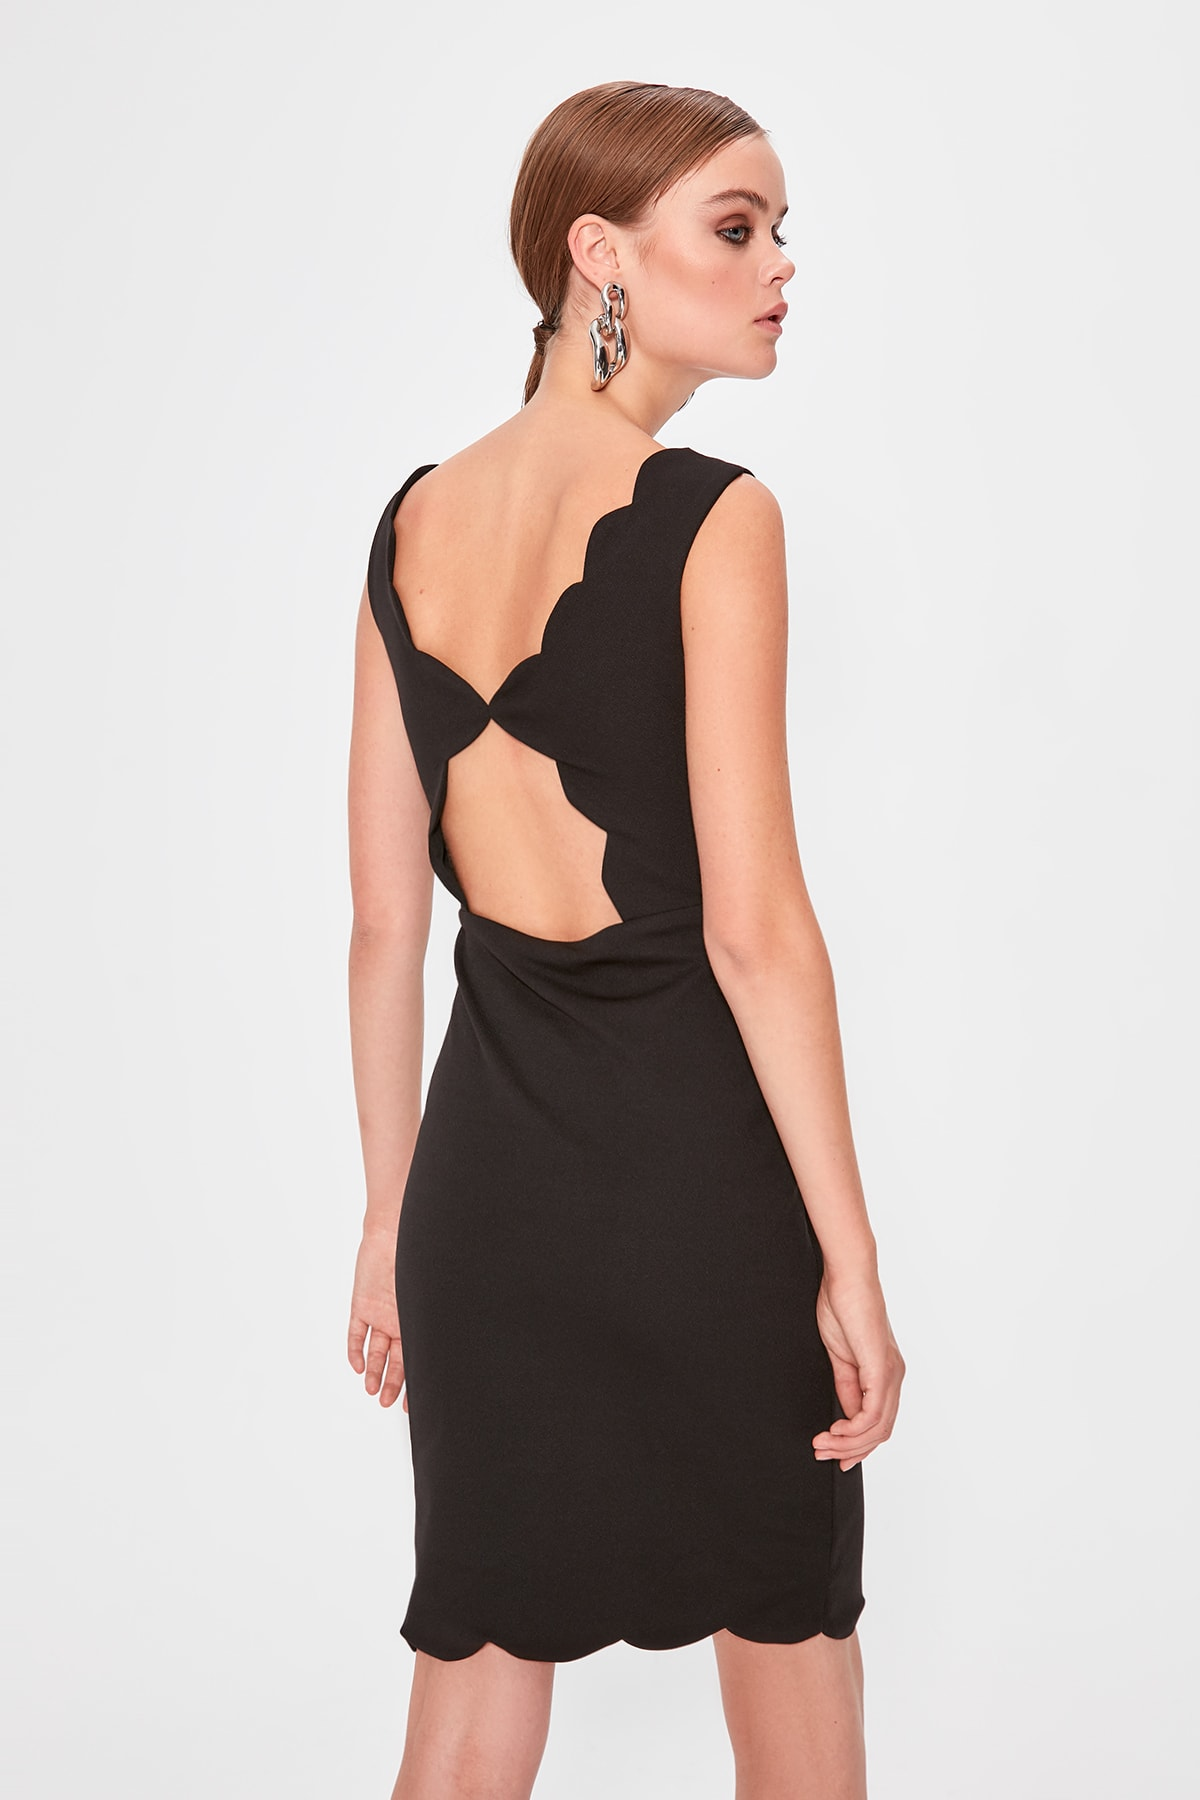 Trendyol Back Low-Cut Detail Dress TPRAW20EL1772